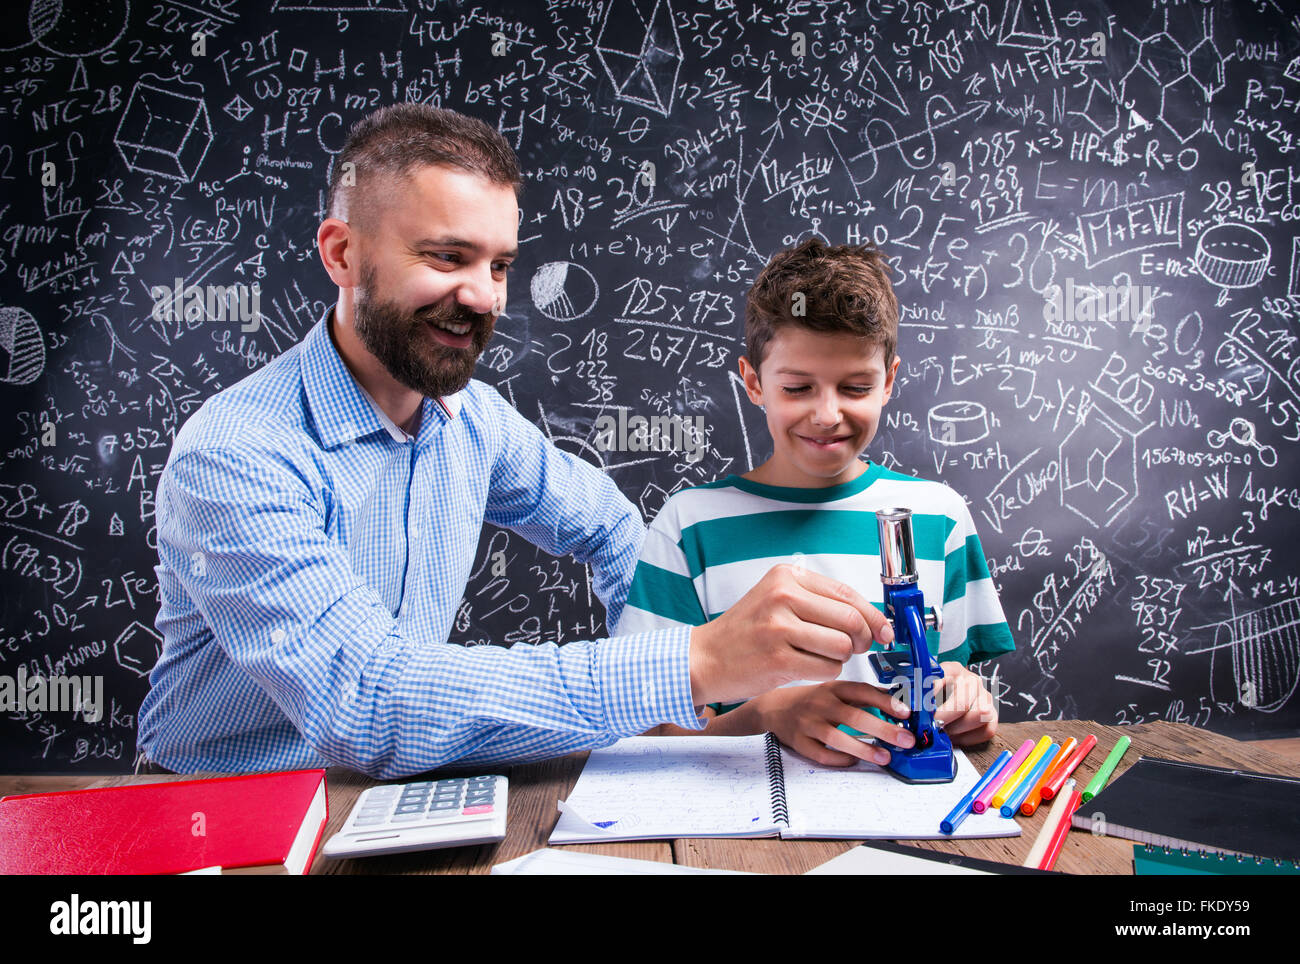 Hipster teacher with his student with microscope, big blackboard - Stock Image